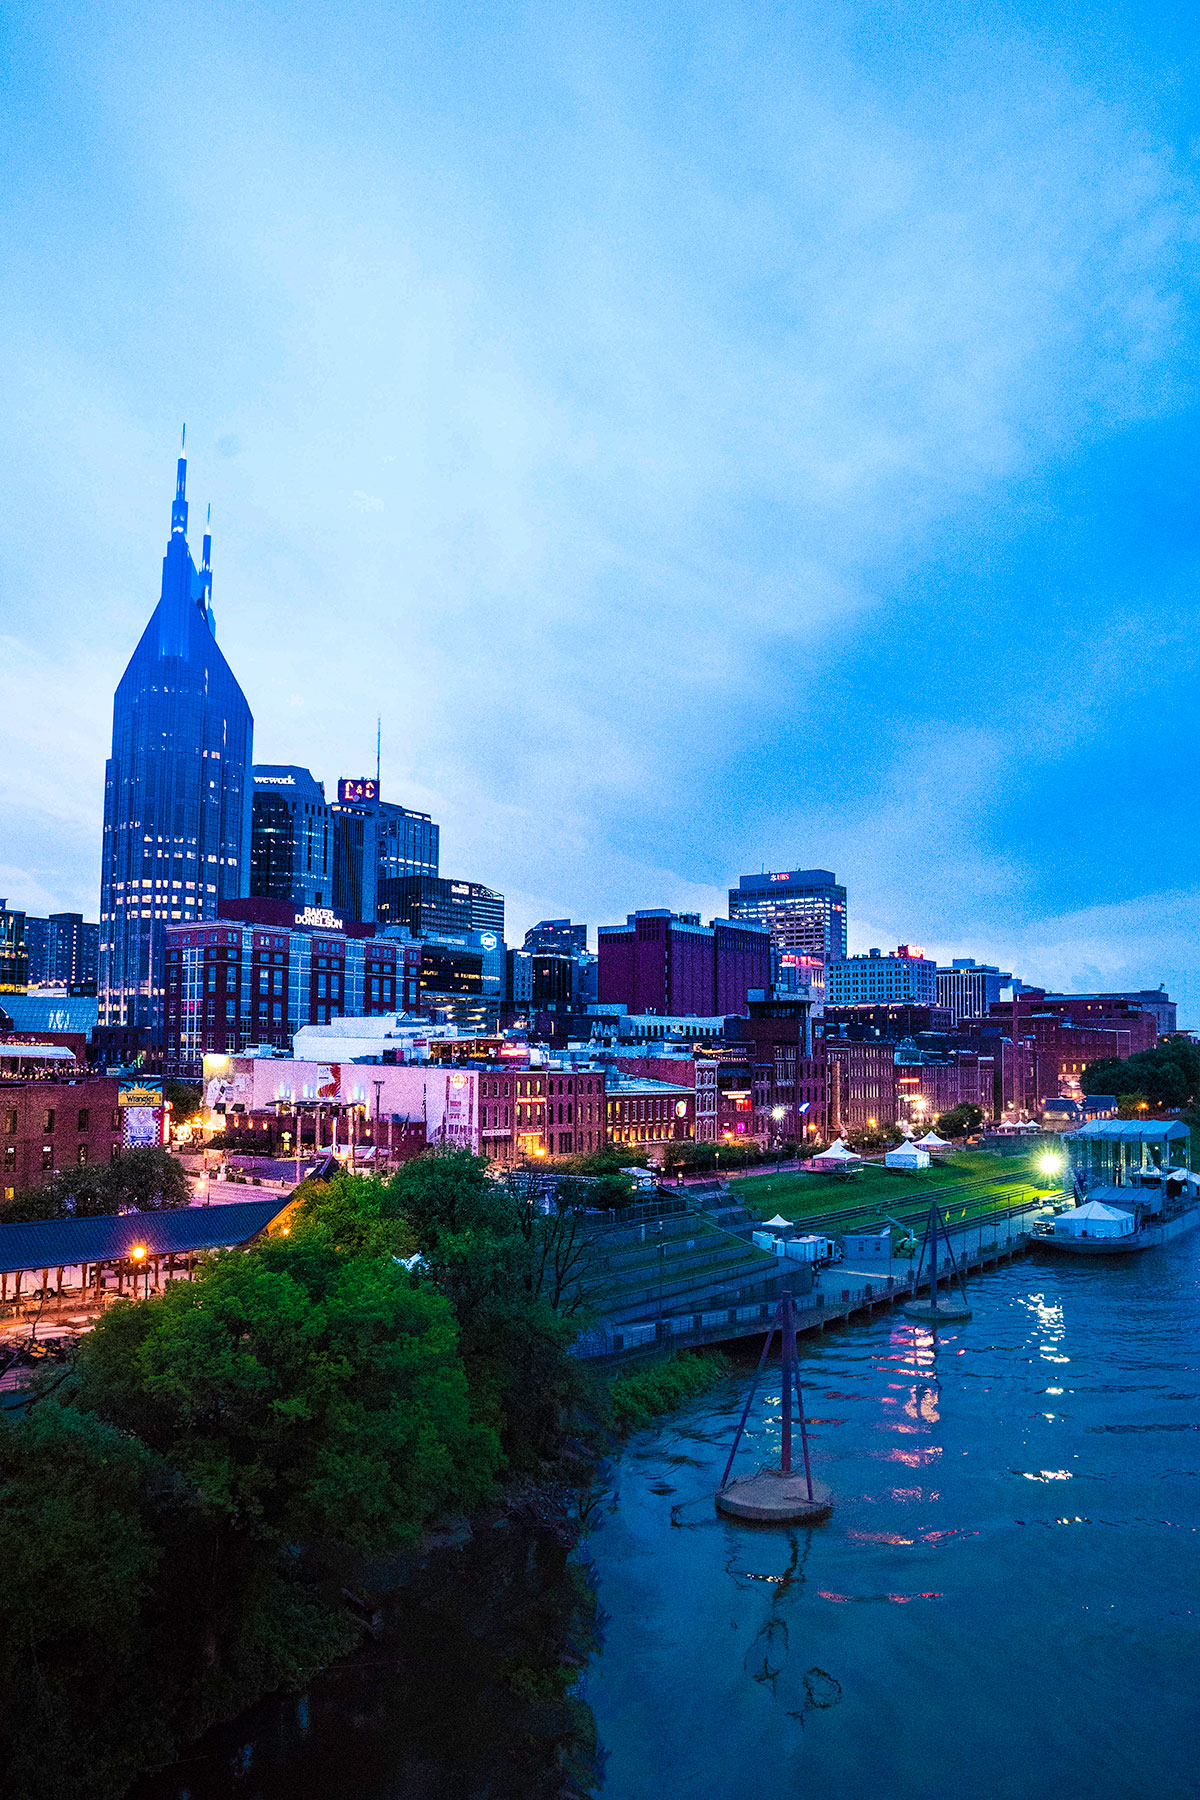 Traveling-to-Nashville-Here-Are-the-5-Most-Stunningly-Beautiful-Spots-for-Photos